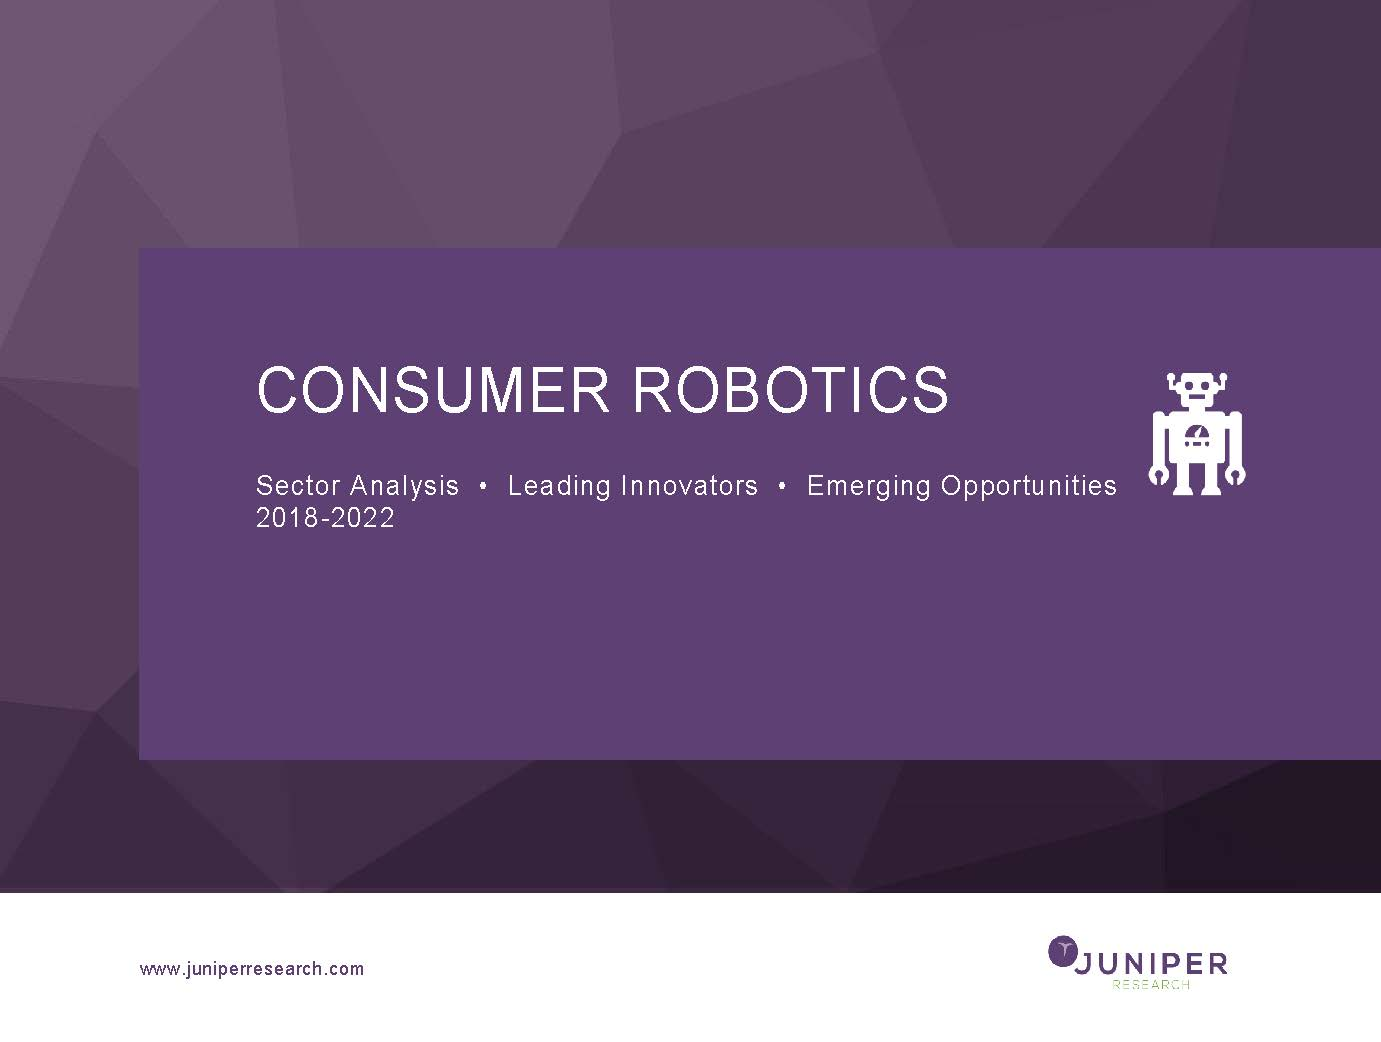 Consumer Robotics: Sector Analysis, Leading Innovators & Emerging Opportunities 2018-2022 Full Research Suite